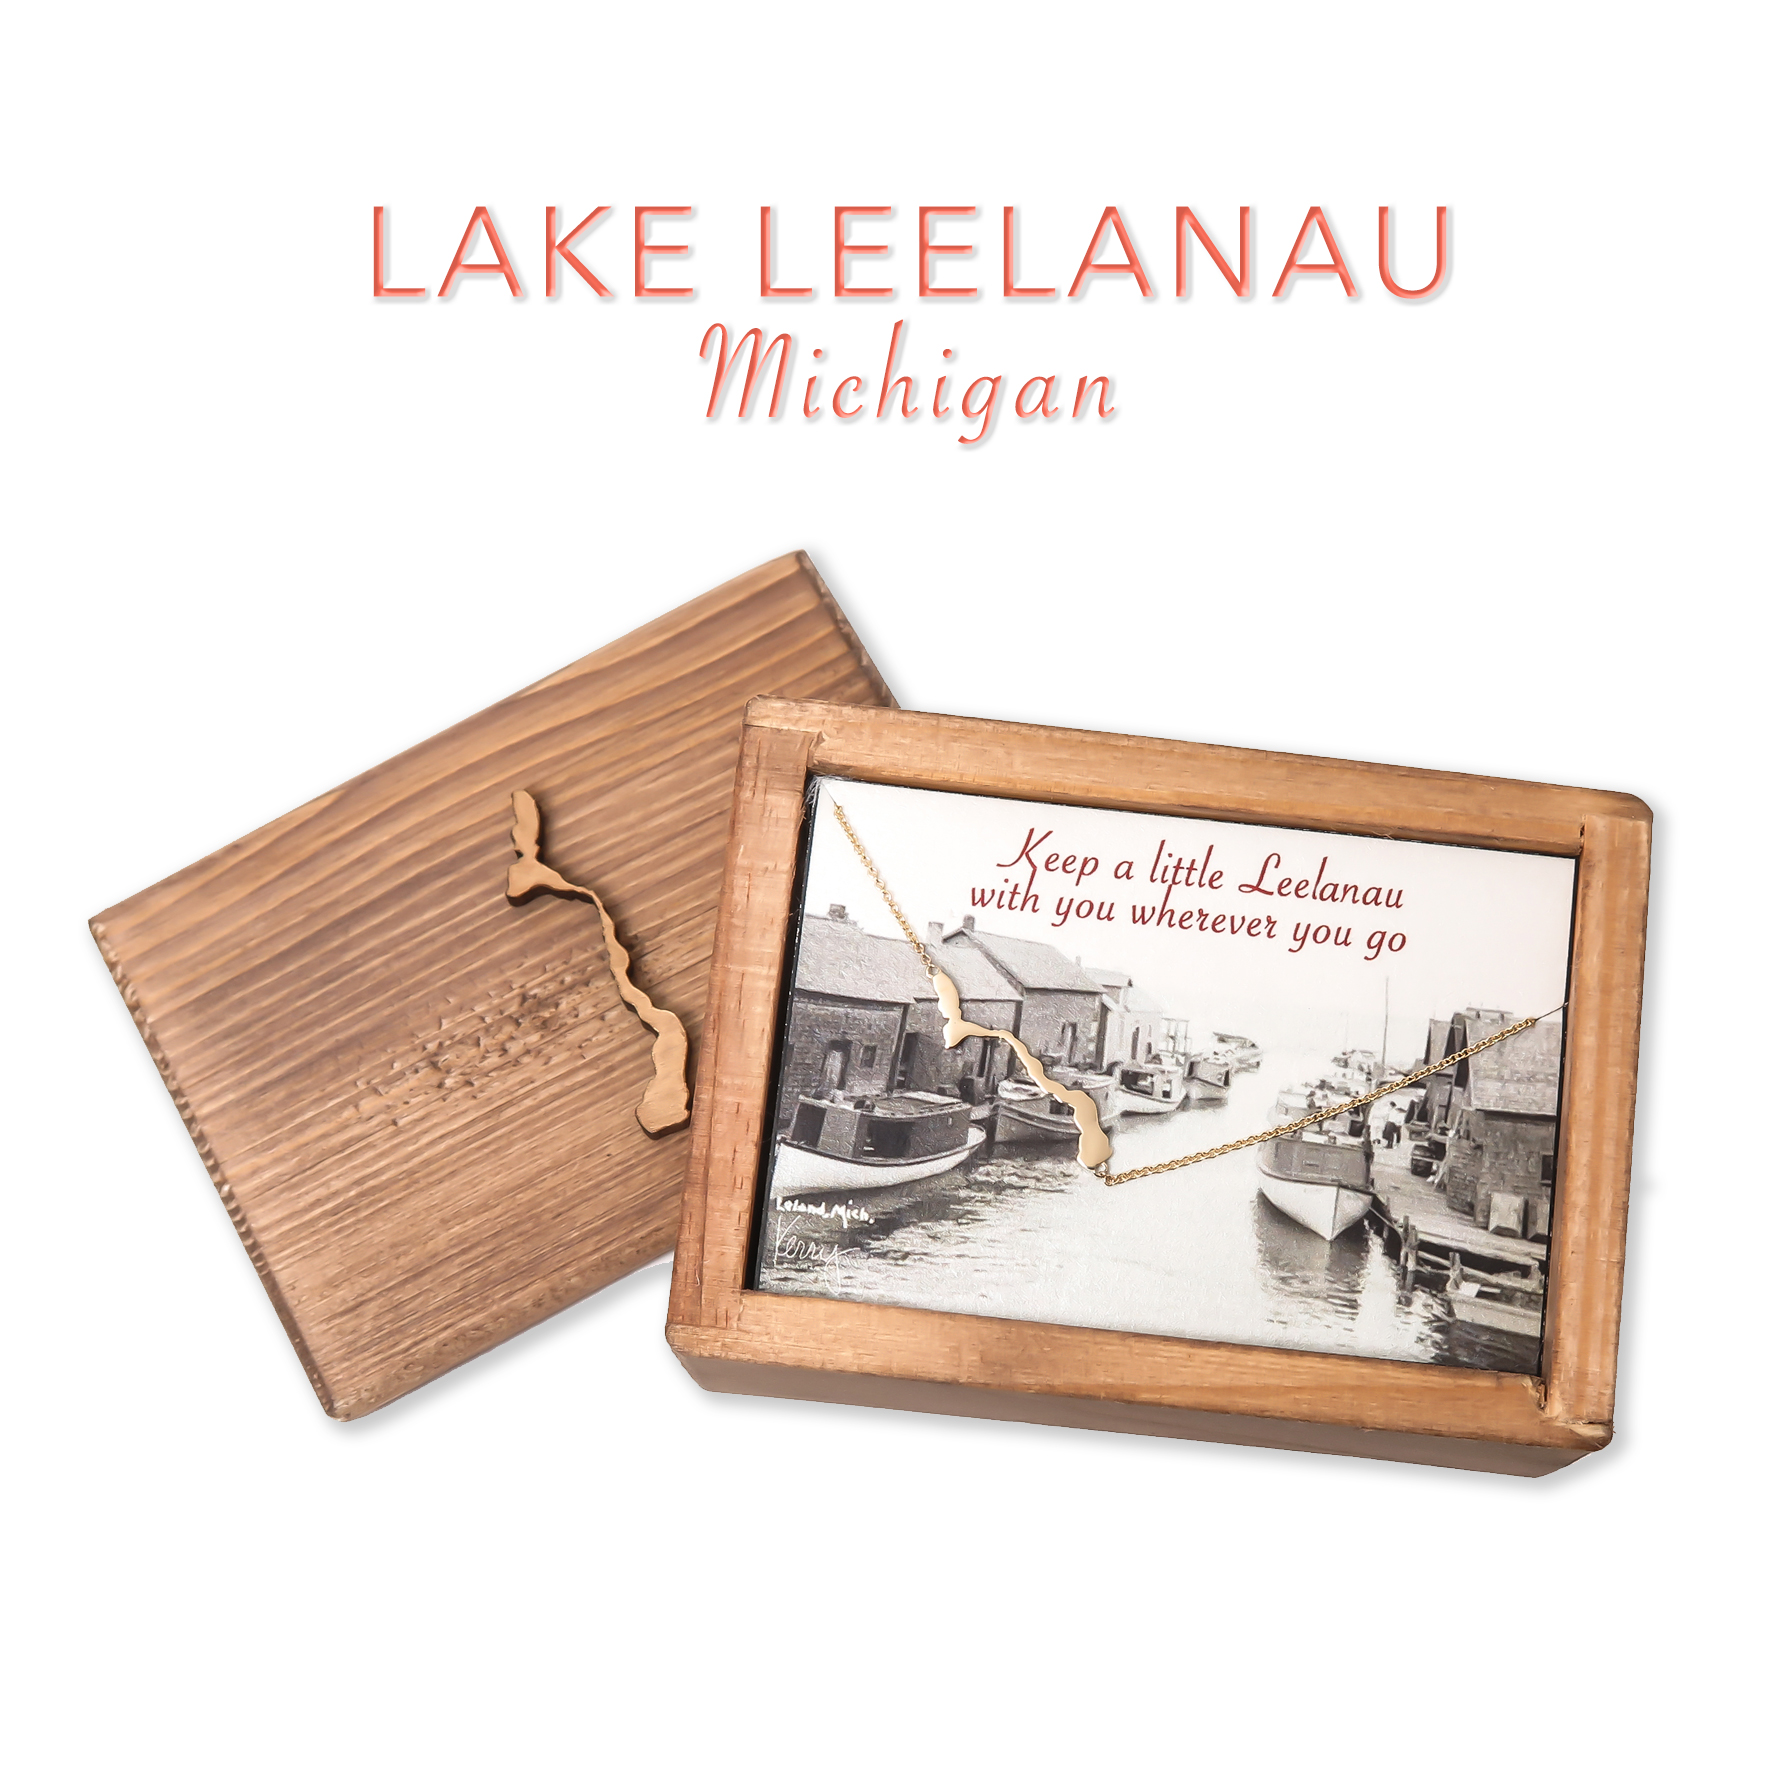 leelanau-on-the-map.jpg